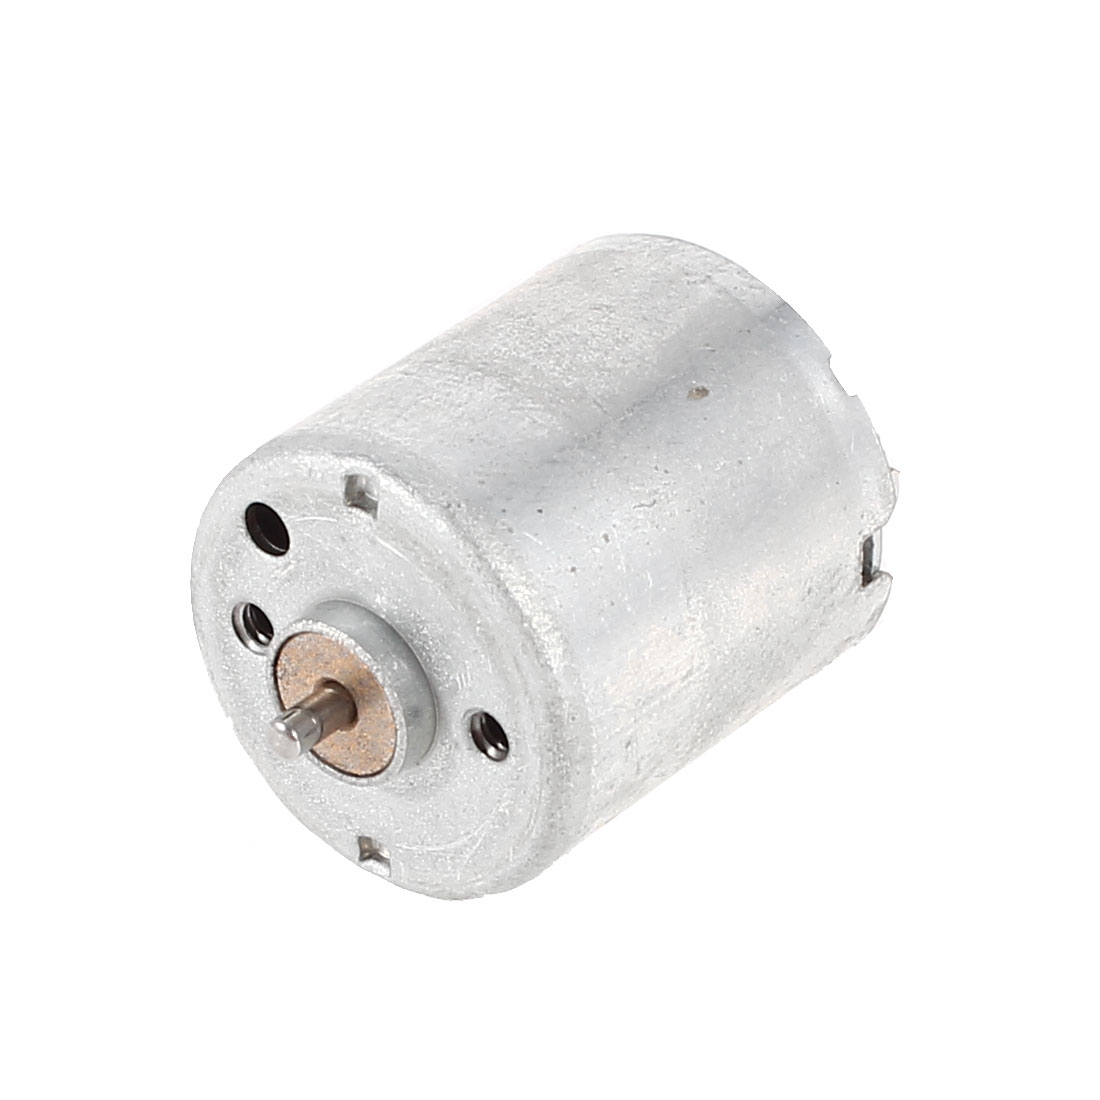 DC 4.5V 12600RPM Micro Motor RF-020TH Silver Tone for RC Model Airplane DIY Toys